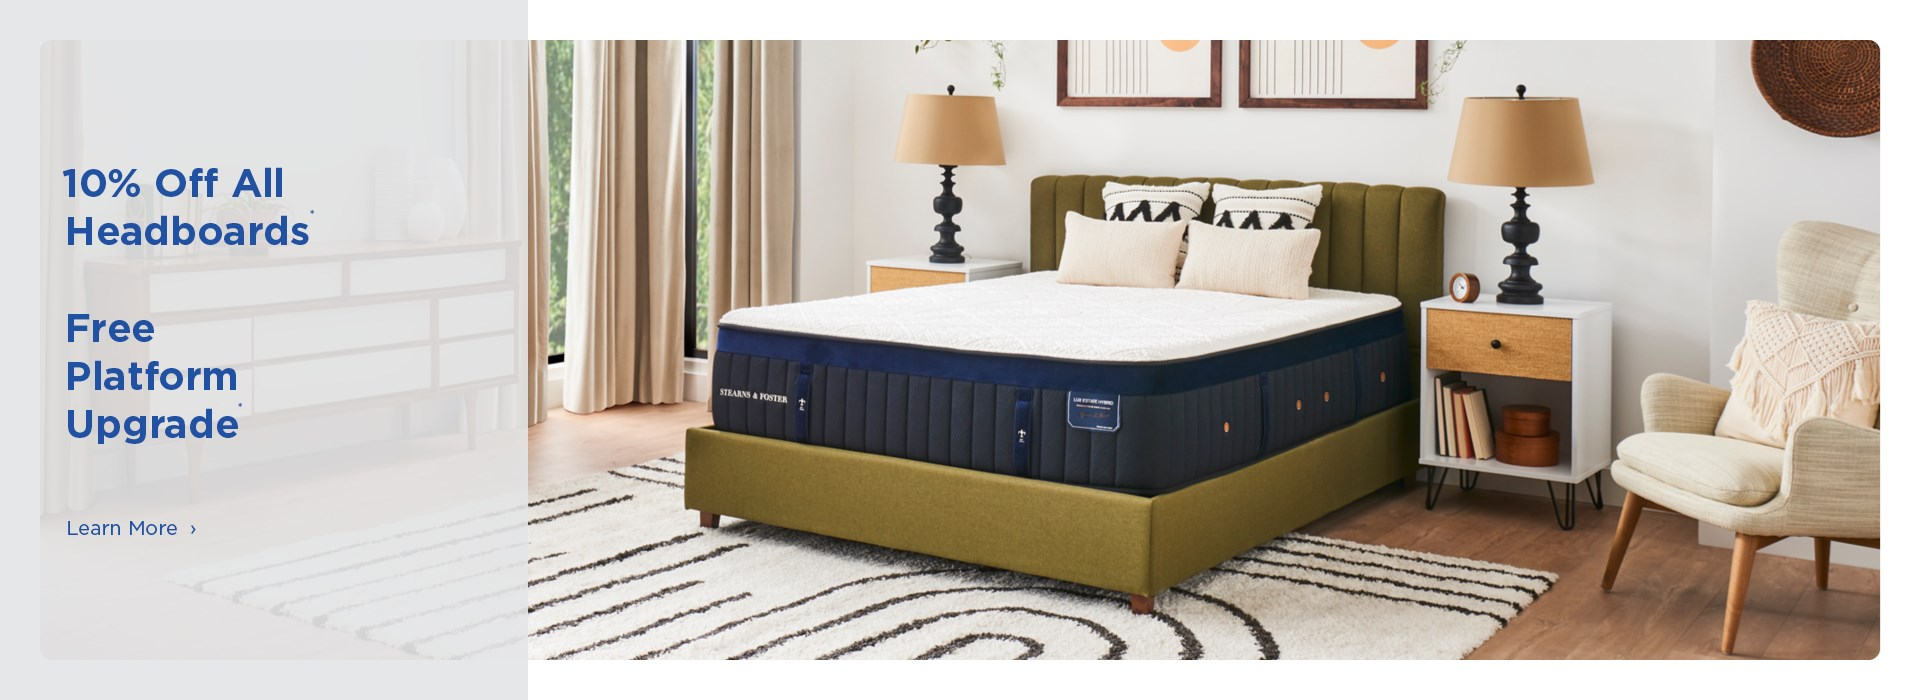 $50 off Bed in a Box, 10% off headboards. Free platform upgrade. See store for details.